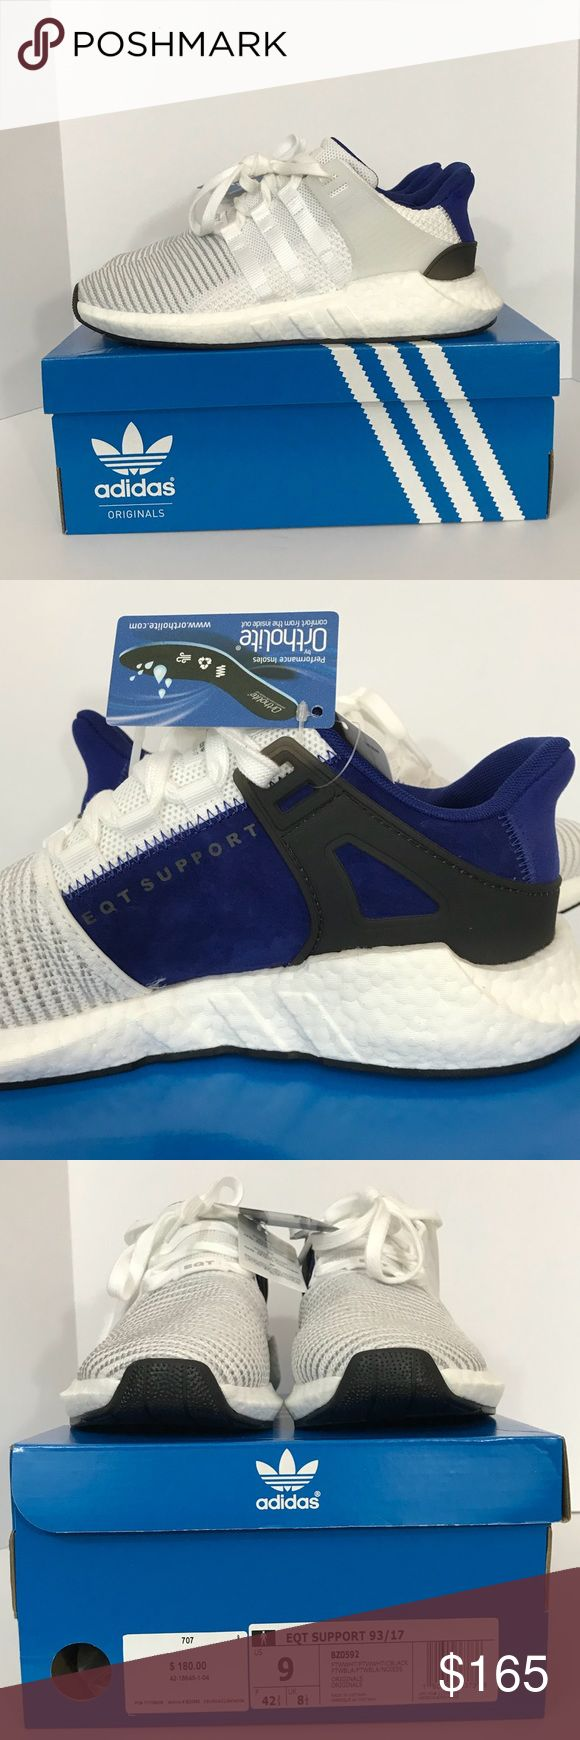 Adidas Equipment Support 93/17 New, W/ Tags adidas Shoes Sneakers